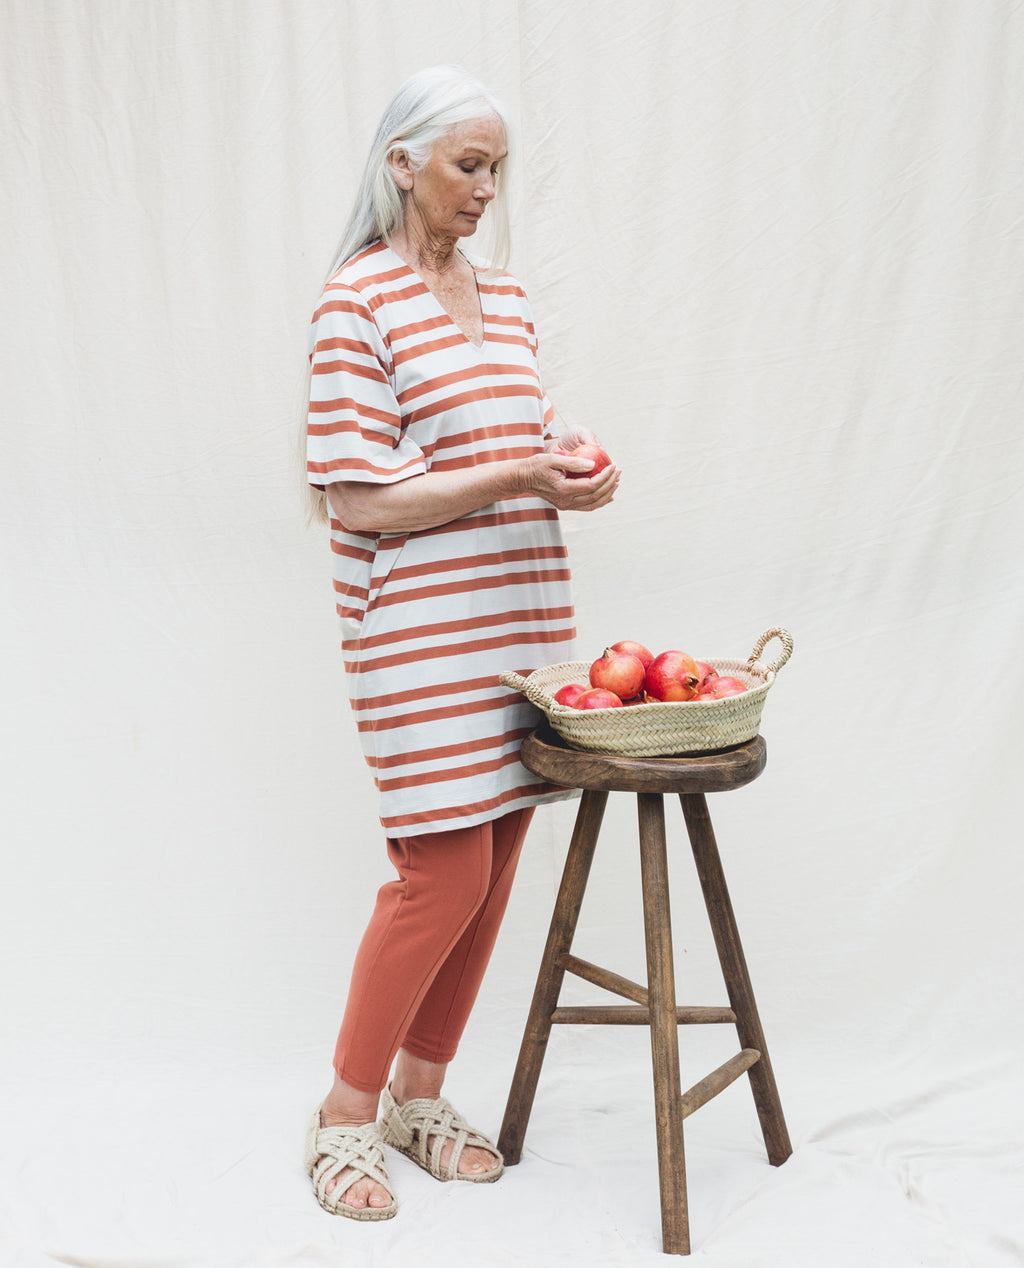 Sasha-Sue Organic Cotton Dress In Beige & Clay.